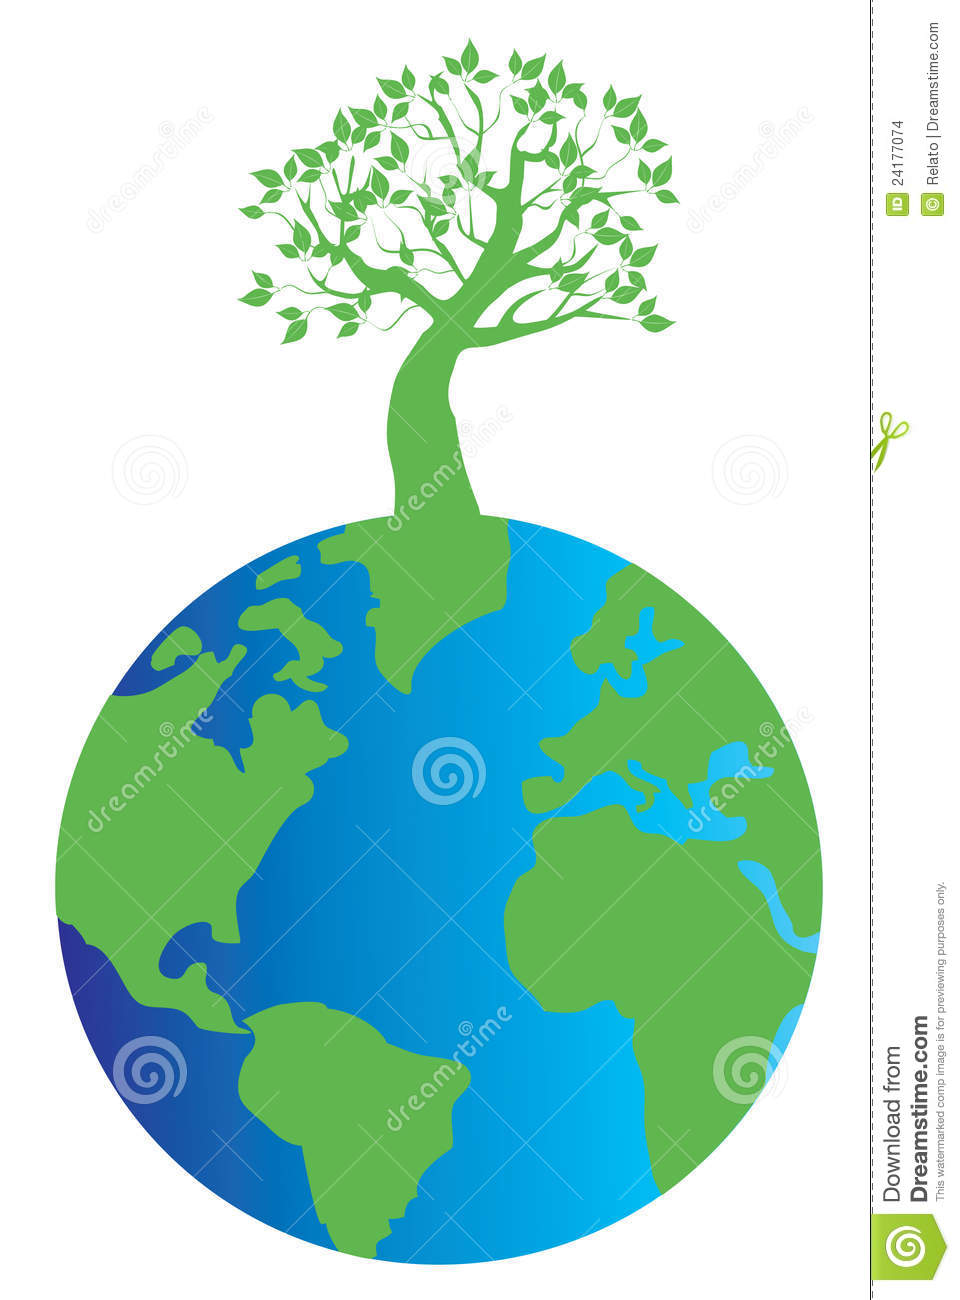 Tree on earth images clipart svg royalty free Earth and tree | Clipart Panda - Free Clipart Images svg royalty free